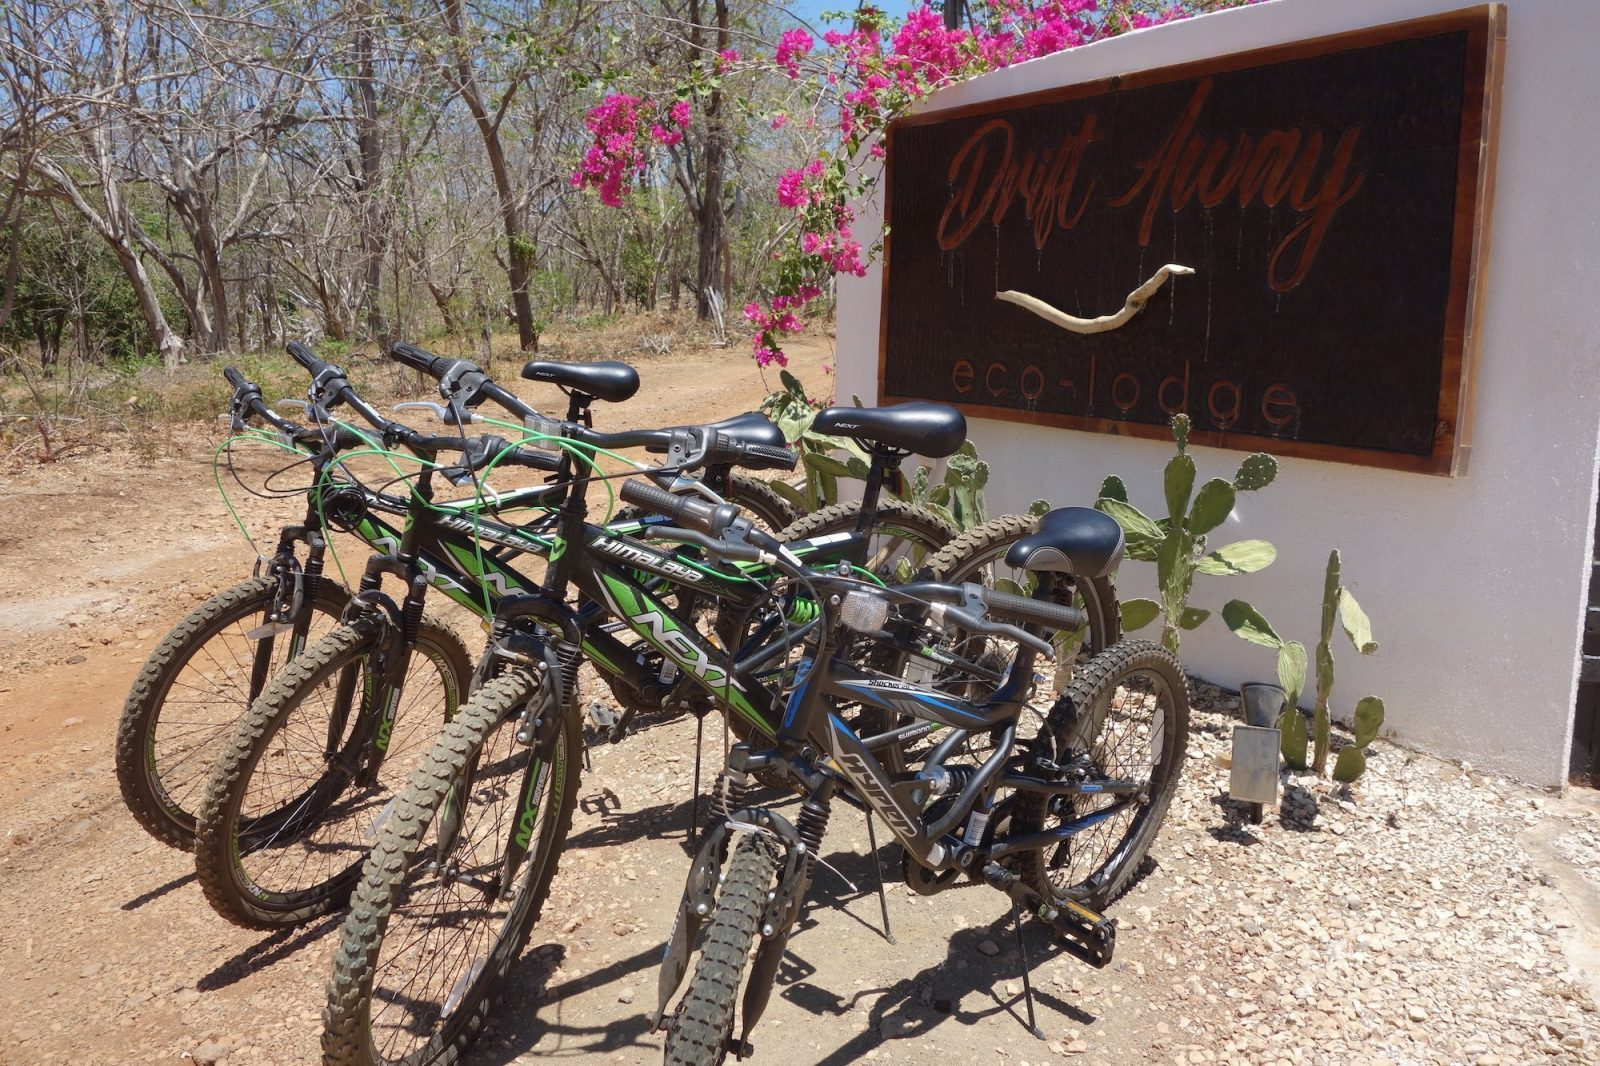 Bike riders will be happy to see several free bicycles waiting for them at the Drift Away Eco-Lodge.